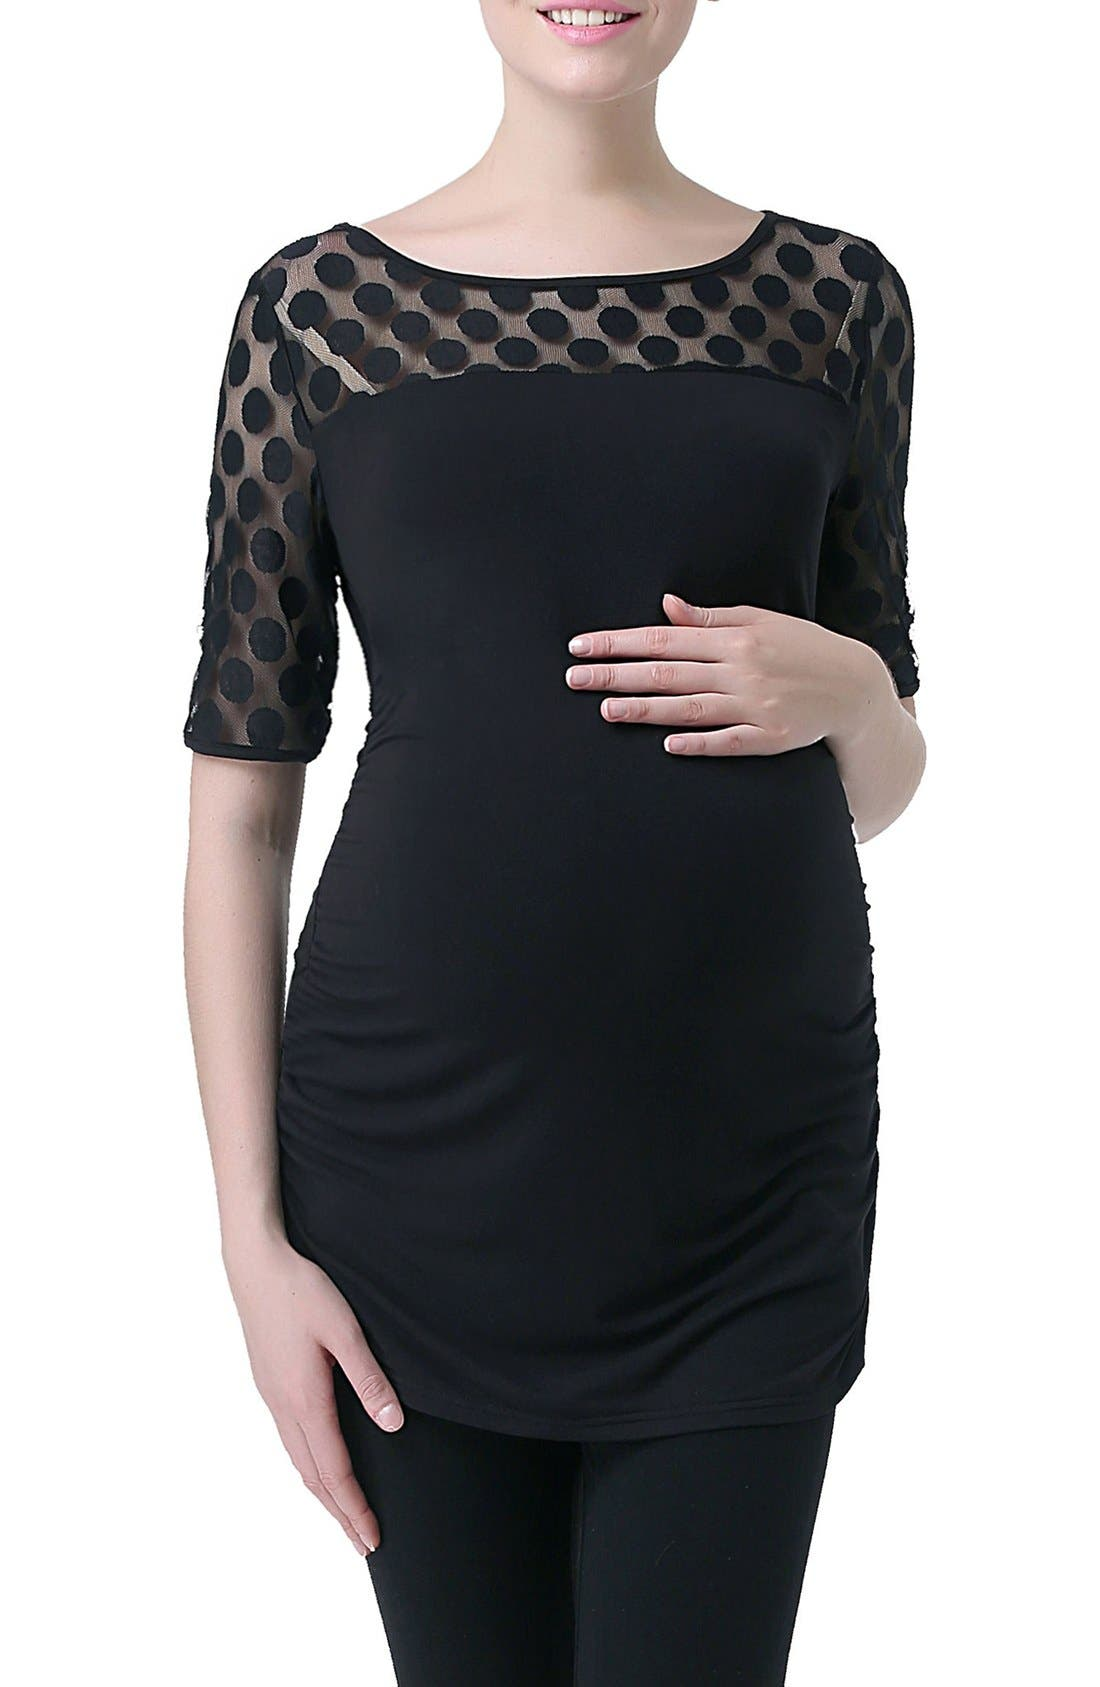 'Gisele' Dot Mesh Maternity Top,                         Main,                         color, Black